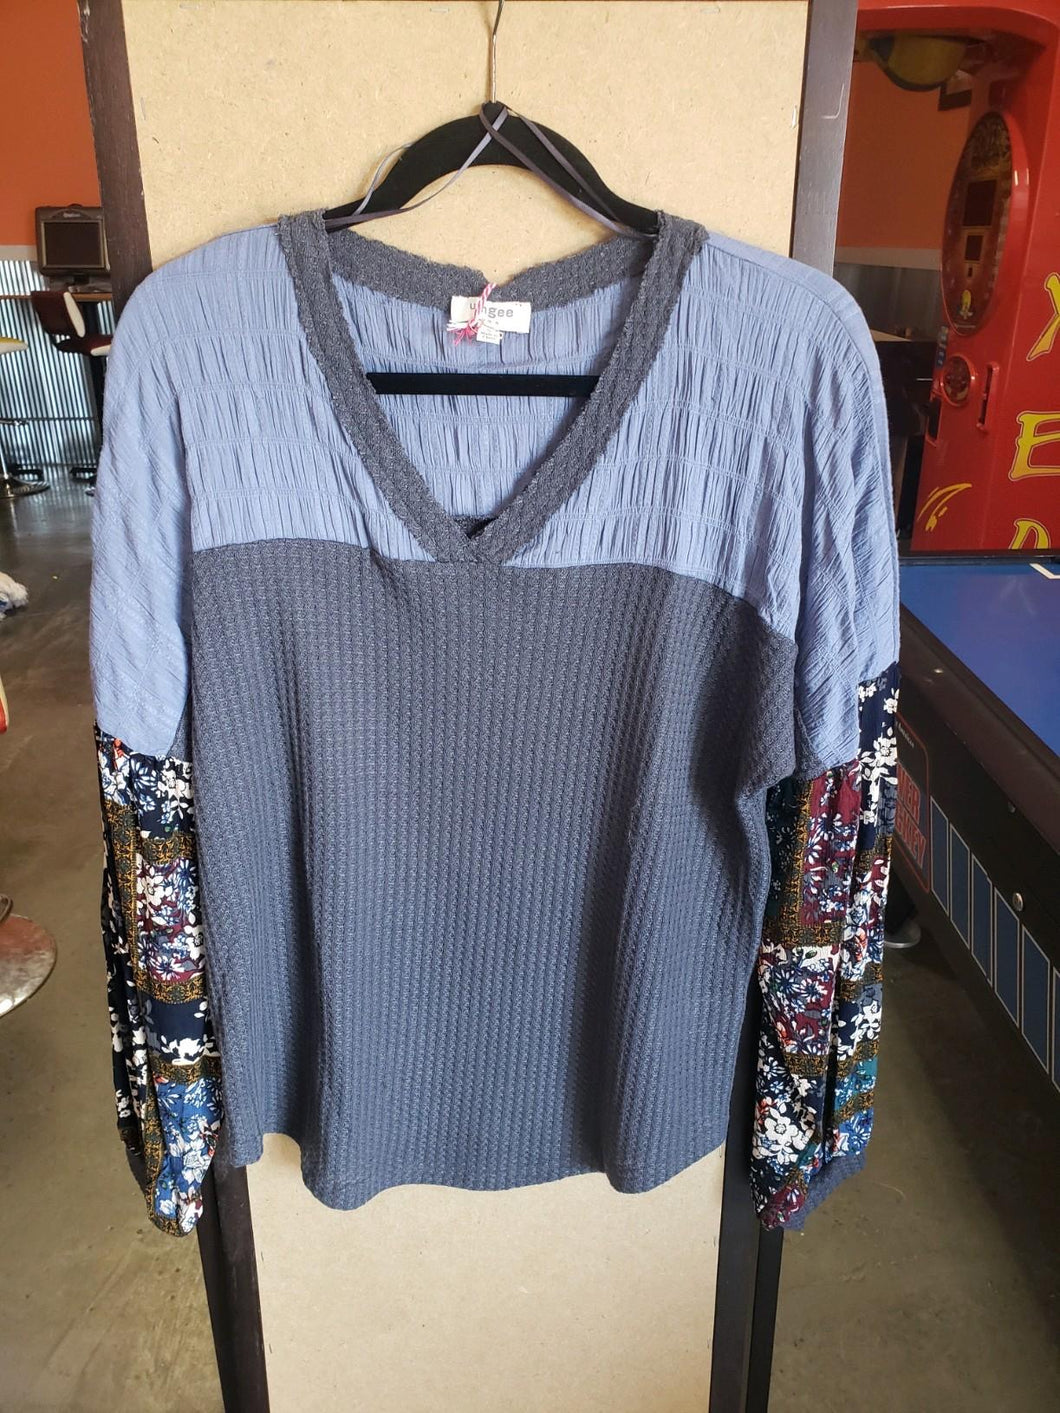 Blue and grey top with patterned sleeves